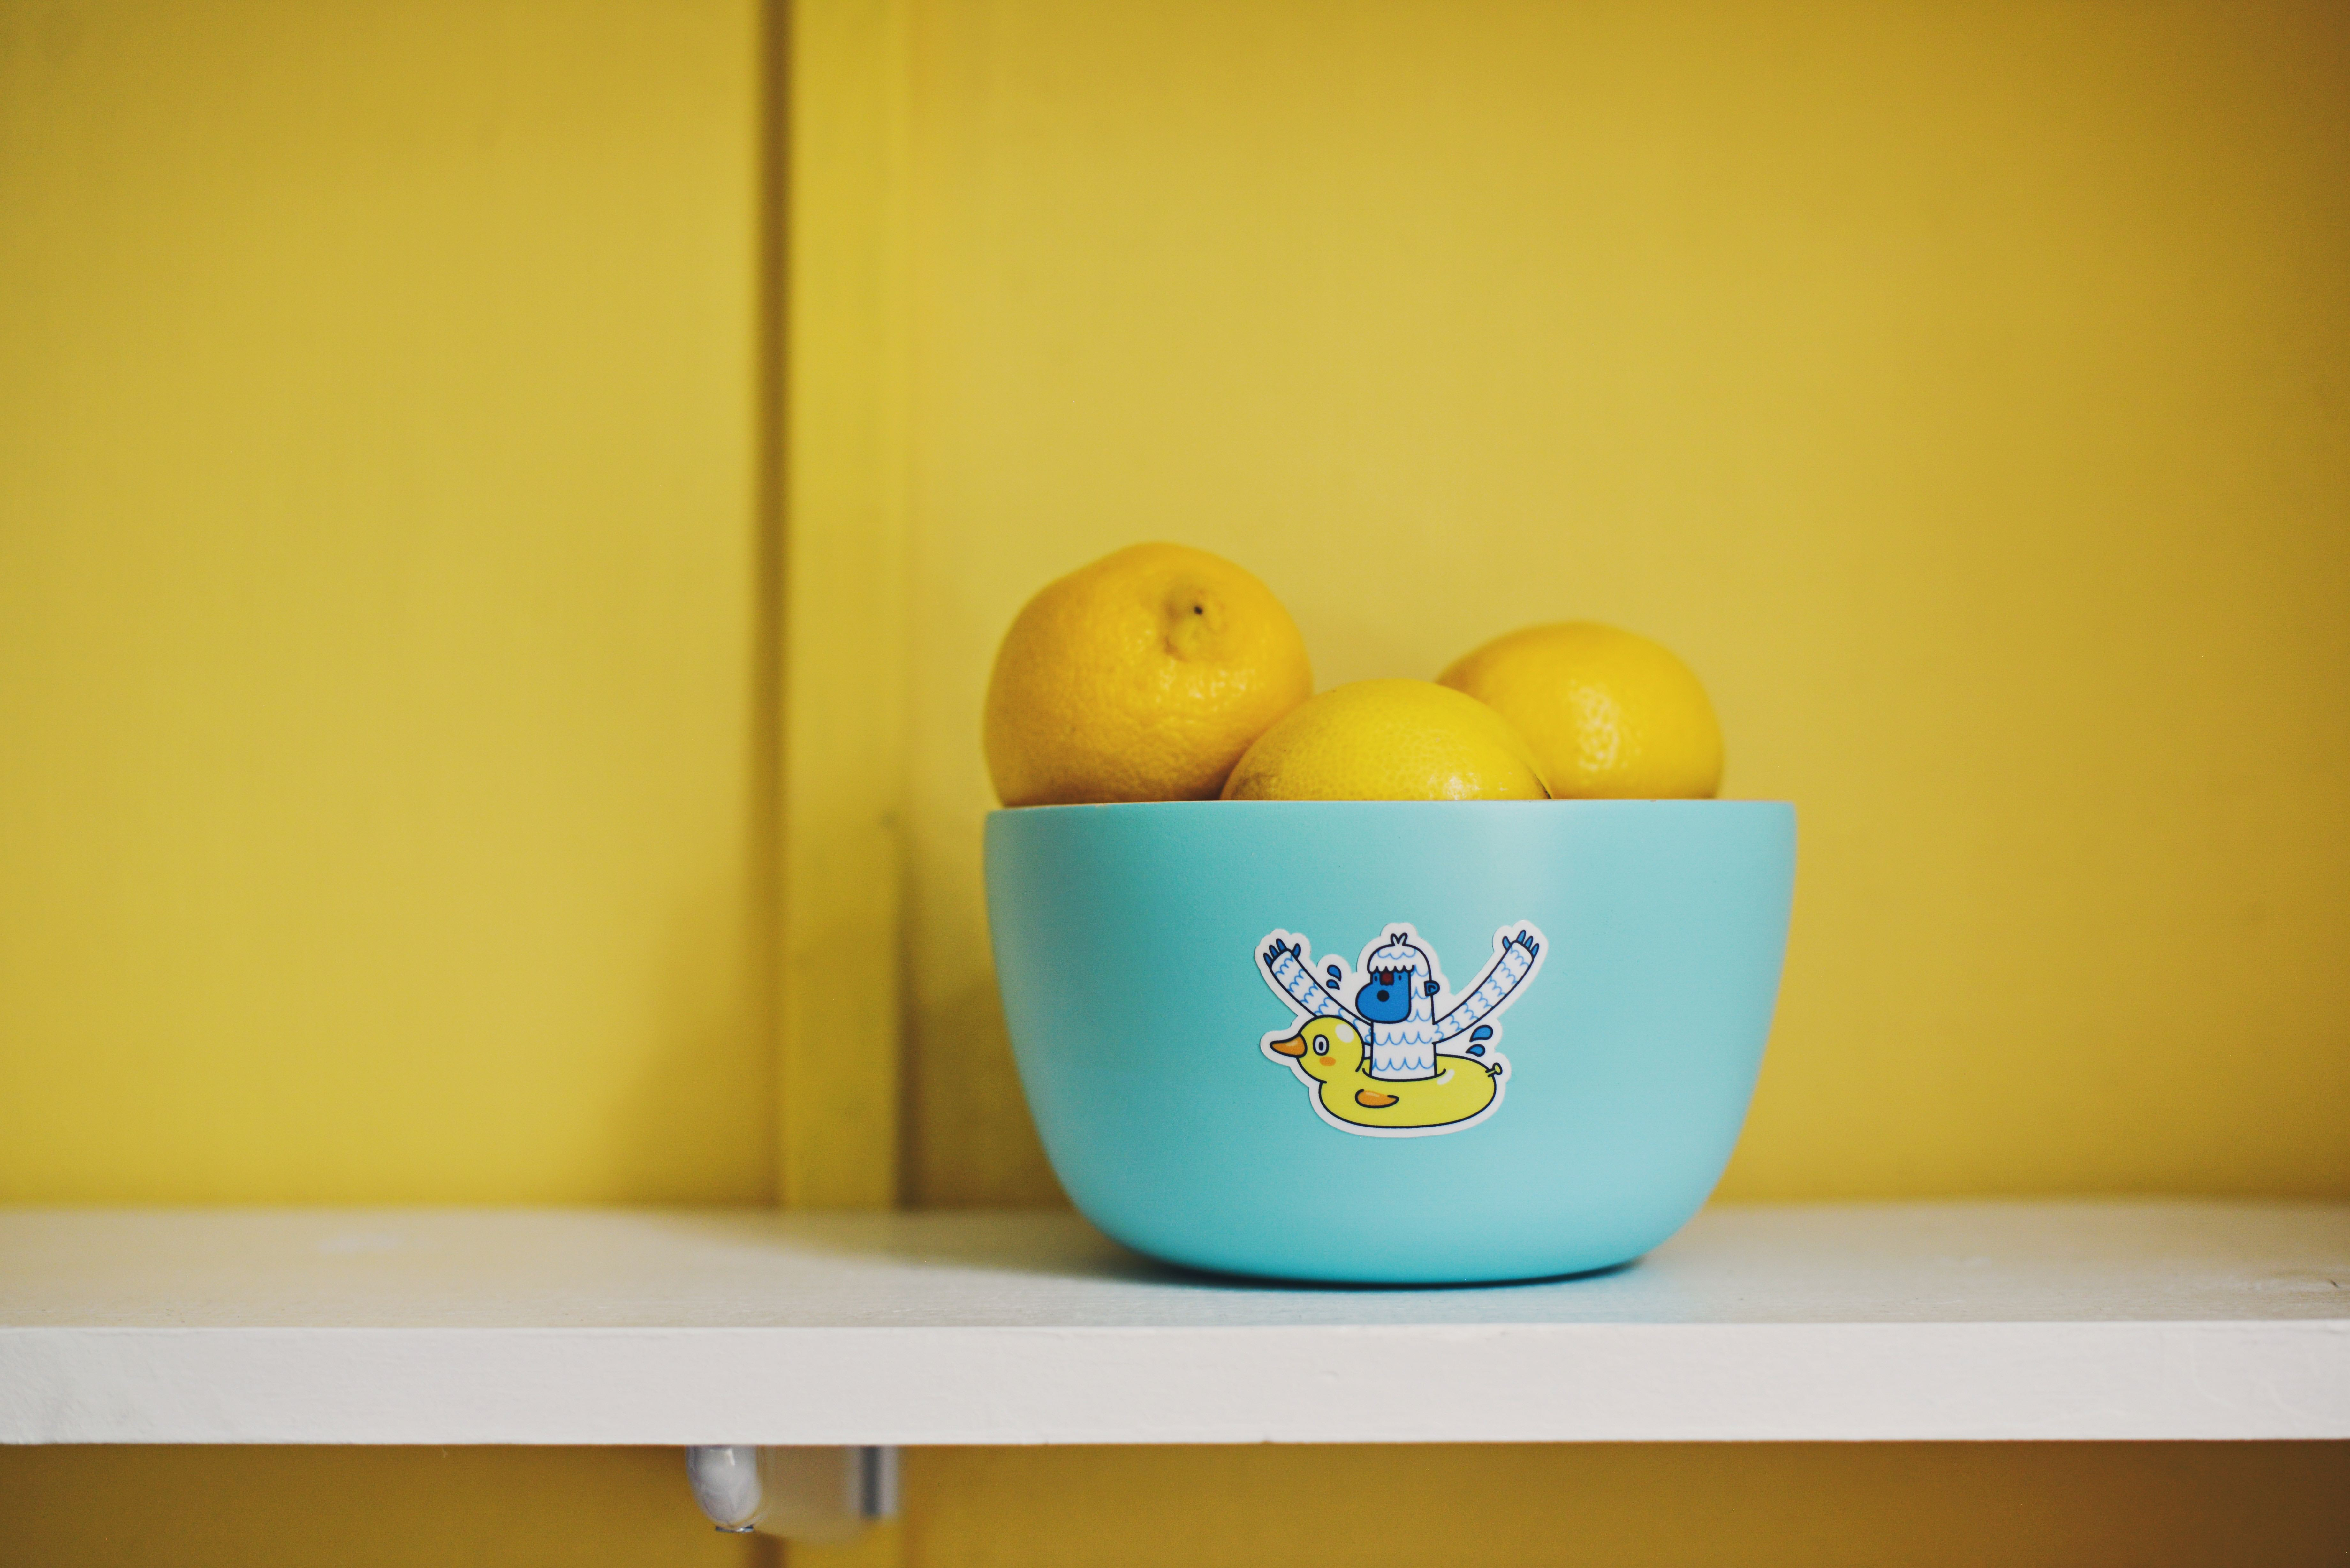 lemons in a blue bowl against a yellow wall